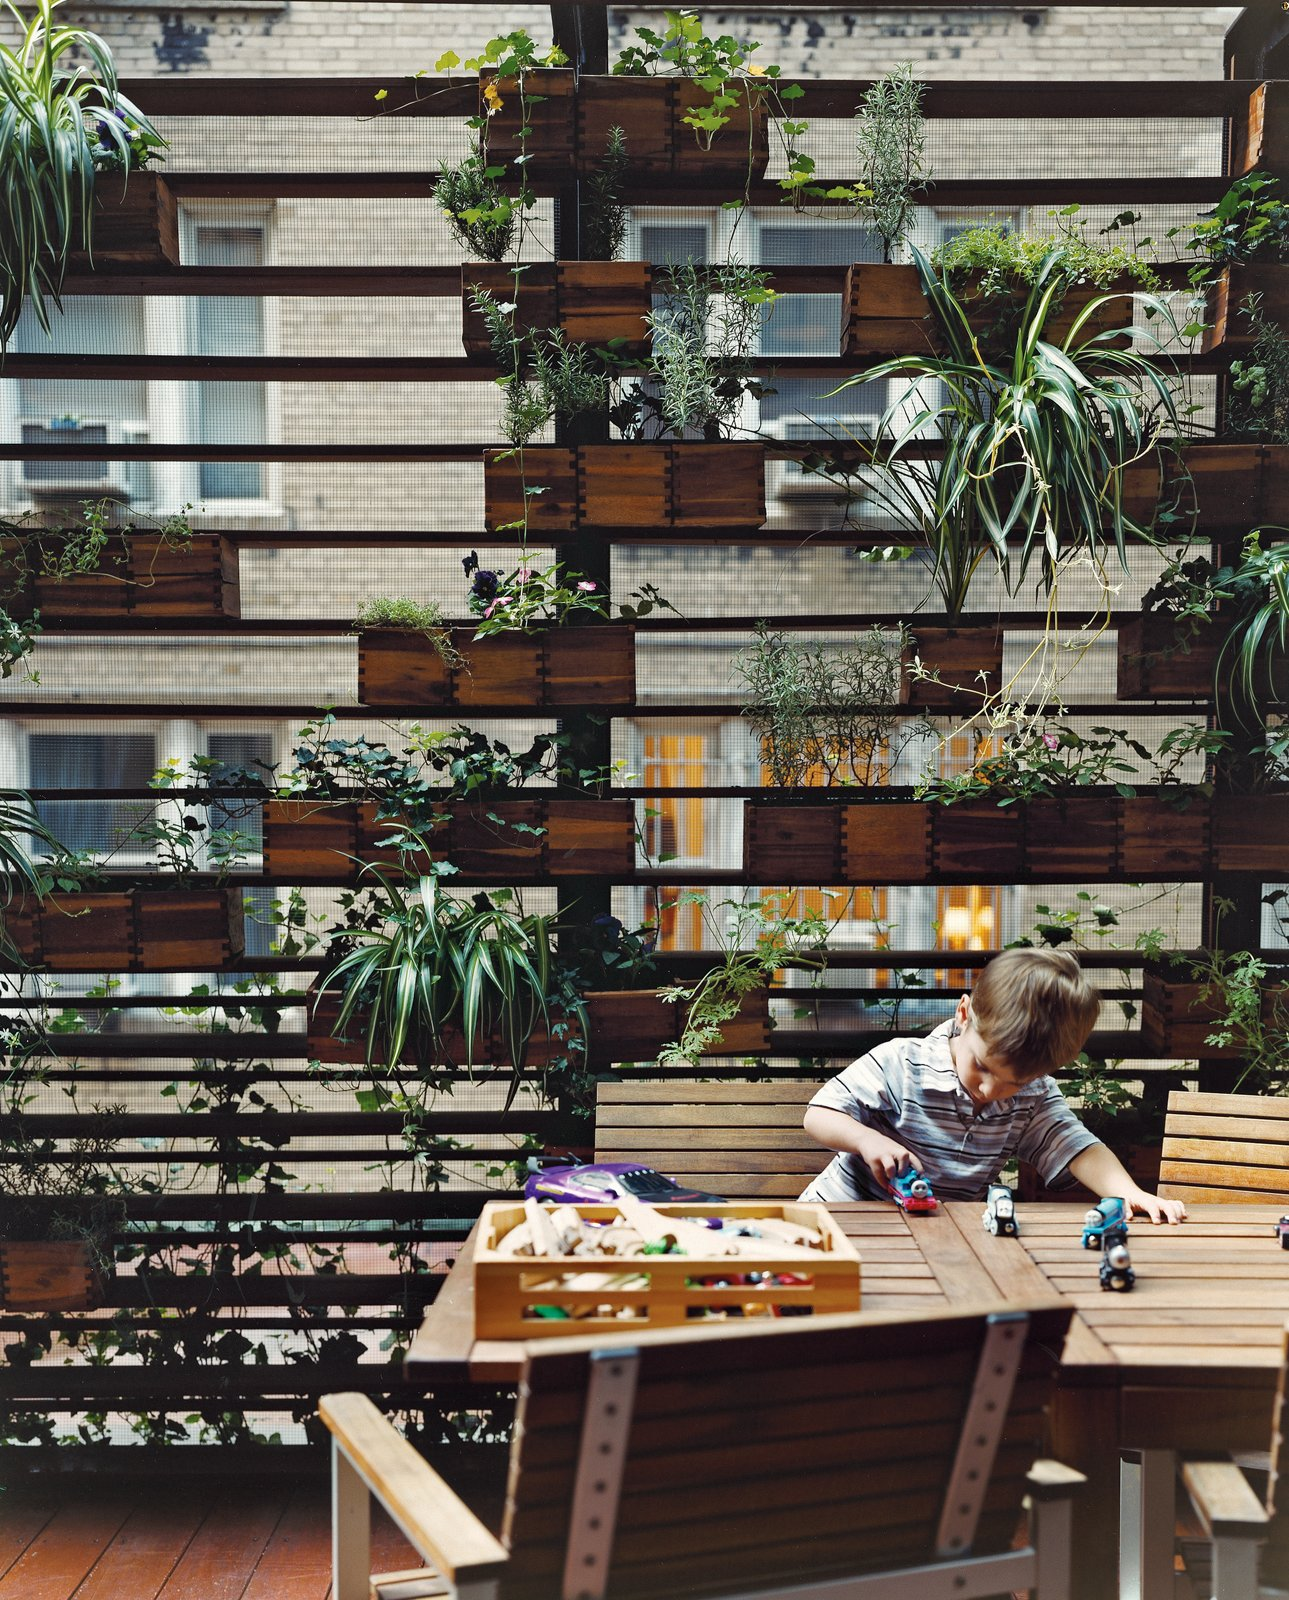 The Zizmors' son plays in front of a living wall created by urban landscaper Kari Elwell Katzander of Mingo Design.  Plants from Outdoor Living in NYC